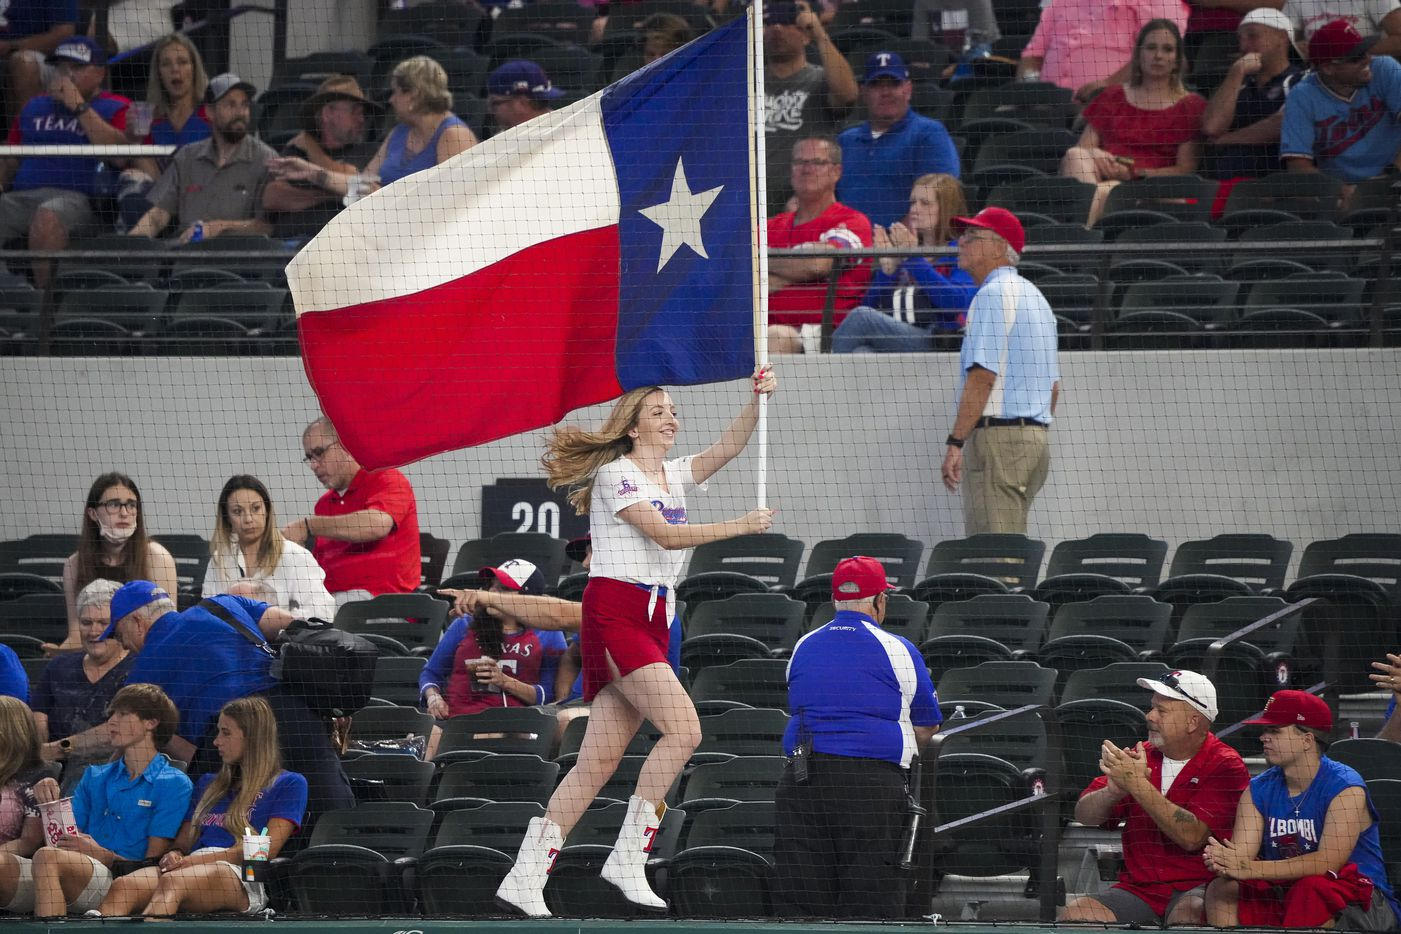 A member of the Texas Rangers Six Shooters squad runs a flag across the dugout before a game against the Minnesota Twins at Globe Life Field on Friday, June 18, 2021.